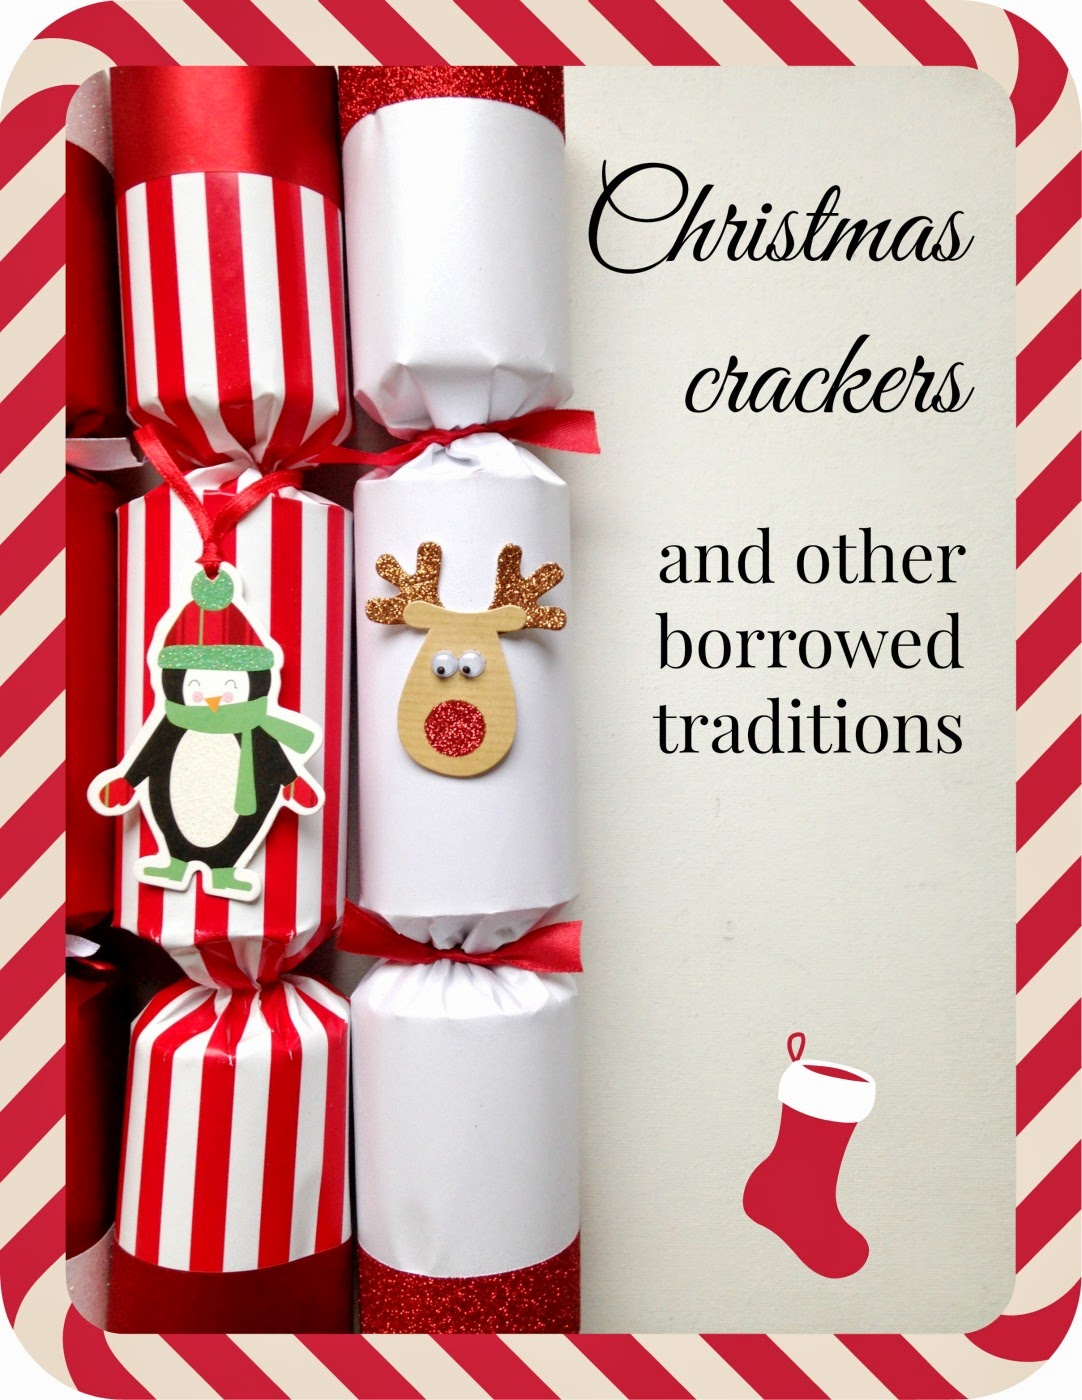 as expats over recent years we have come to make our own christmas traditions we have borrowed a little bit from different countries we have lived in and